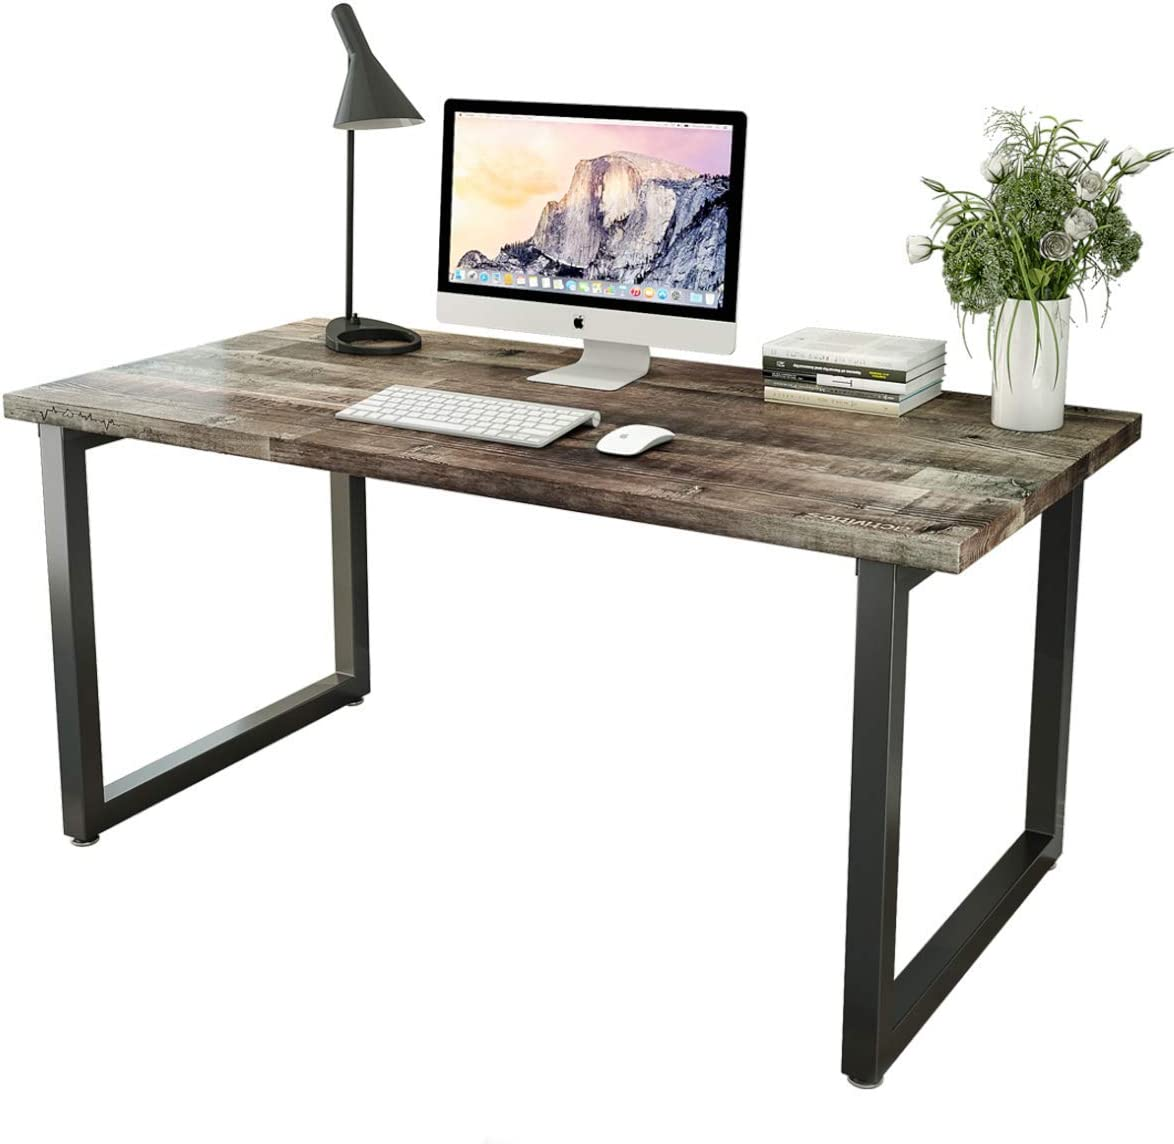 Patavinity Real Wood Computer Desk, 47in Rustic Wood and Metal Writing Desk, Sturdy PC Study Table for Home Office (47'' W x 23'' D x 29 H'', Pine Wood Desktop with Water-Proof PVC Cover, Rustic)